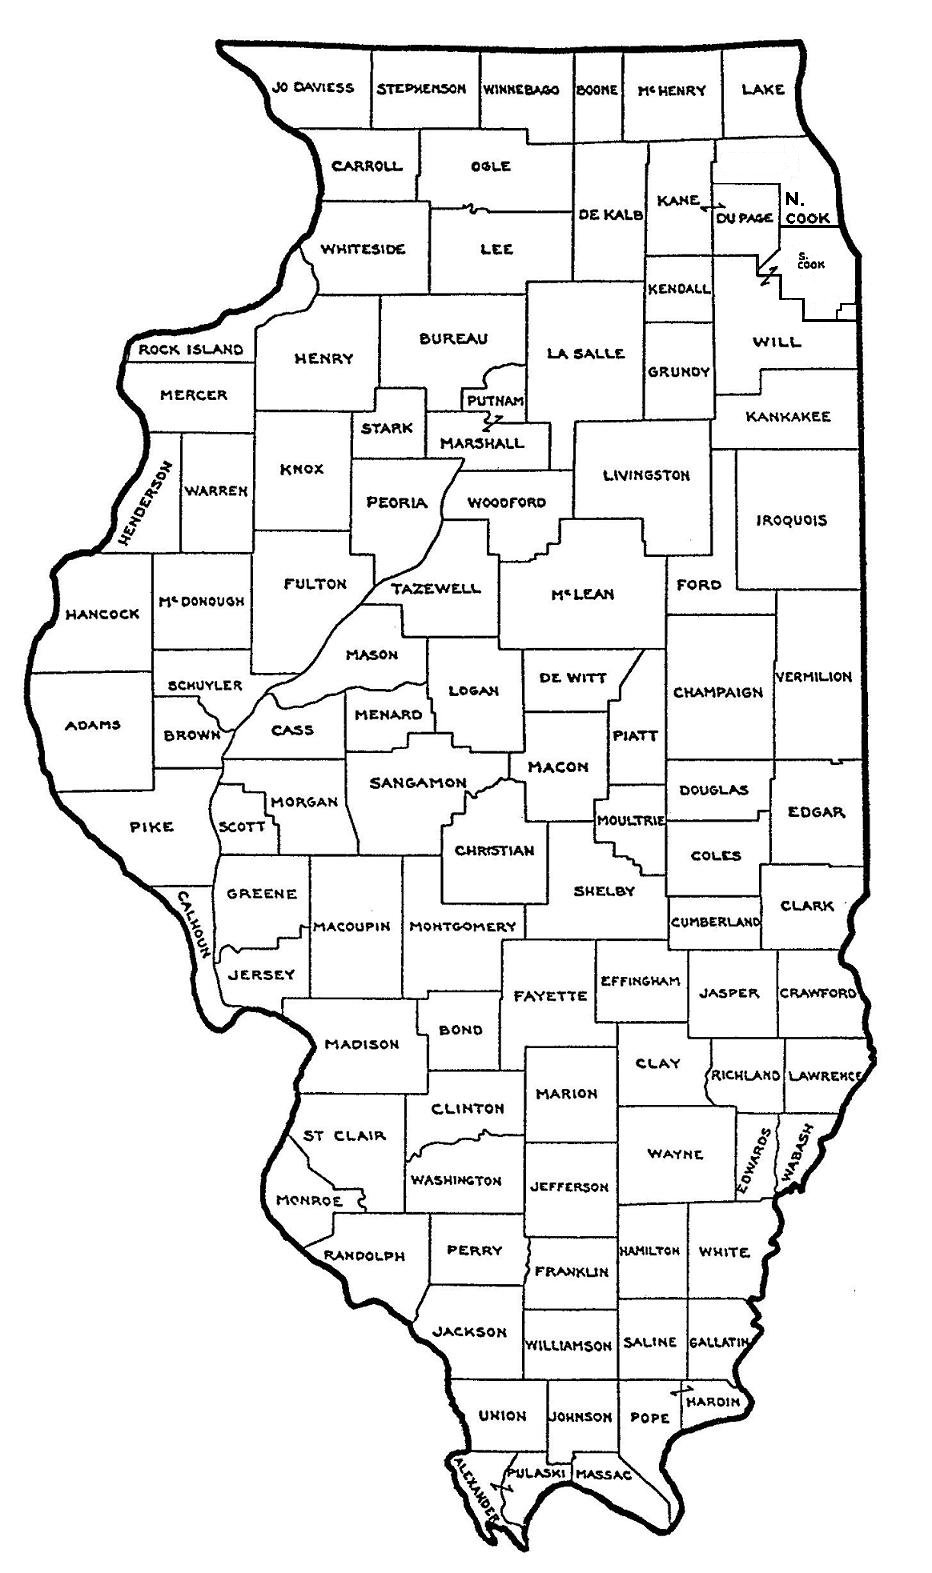 ilmap. legislative districts map  association of illinois soil and water